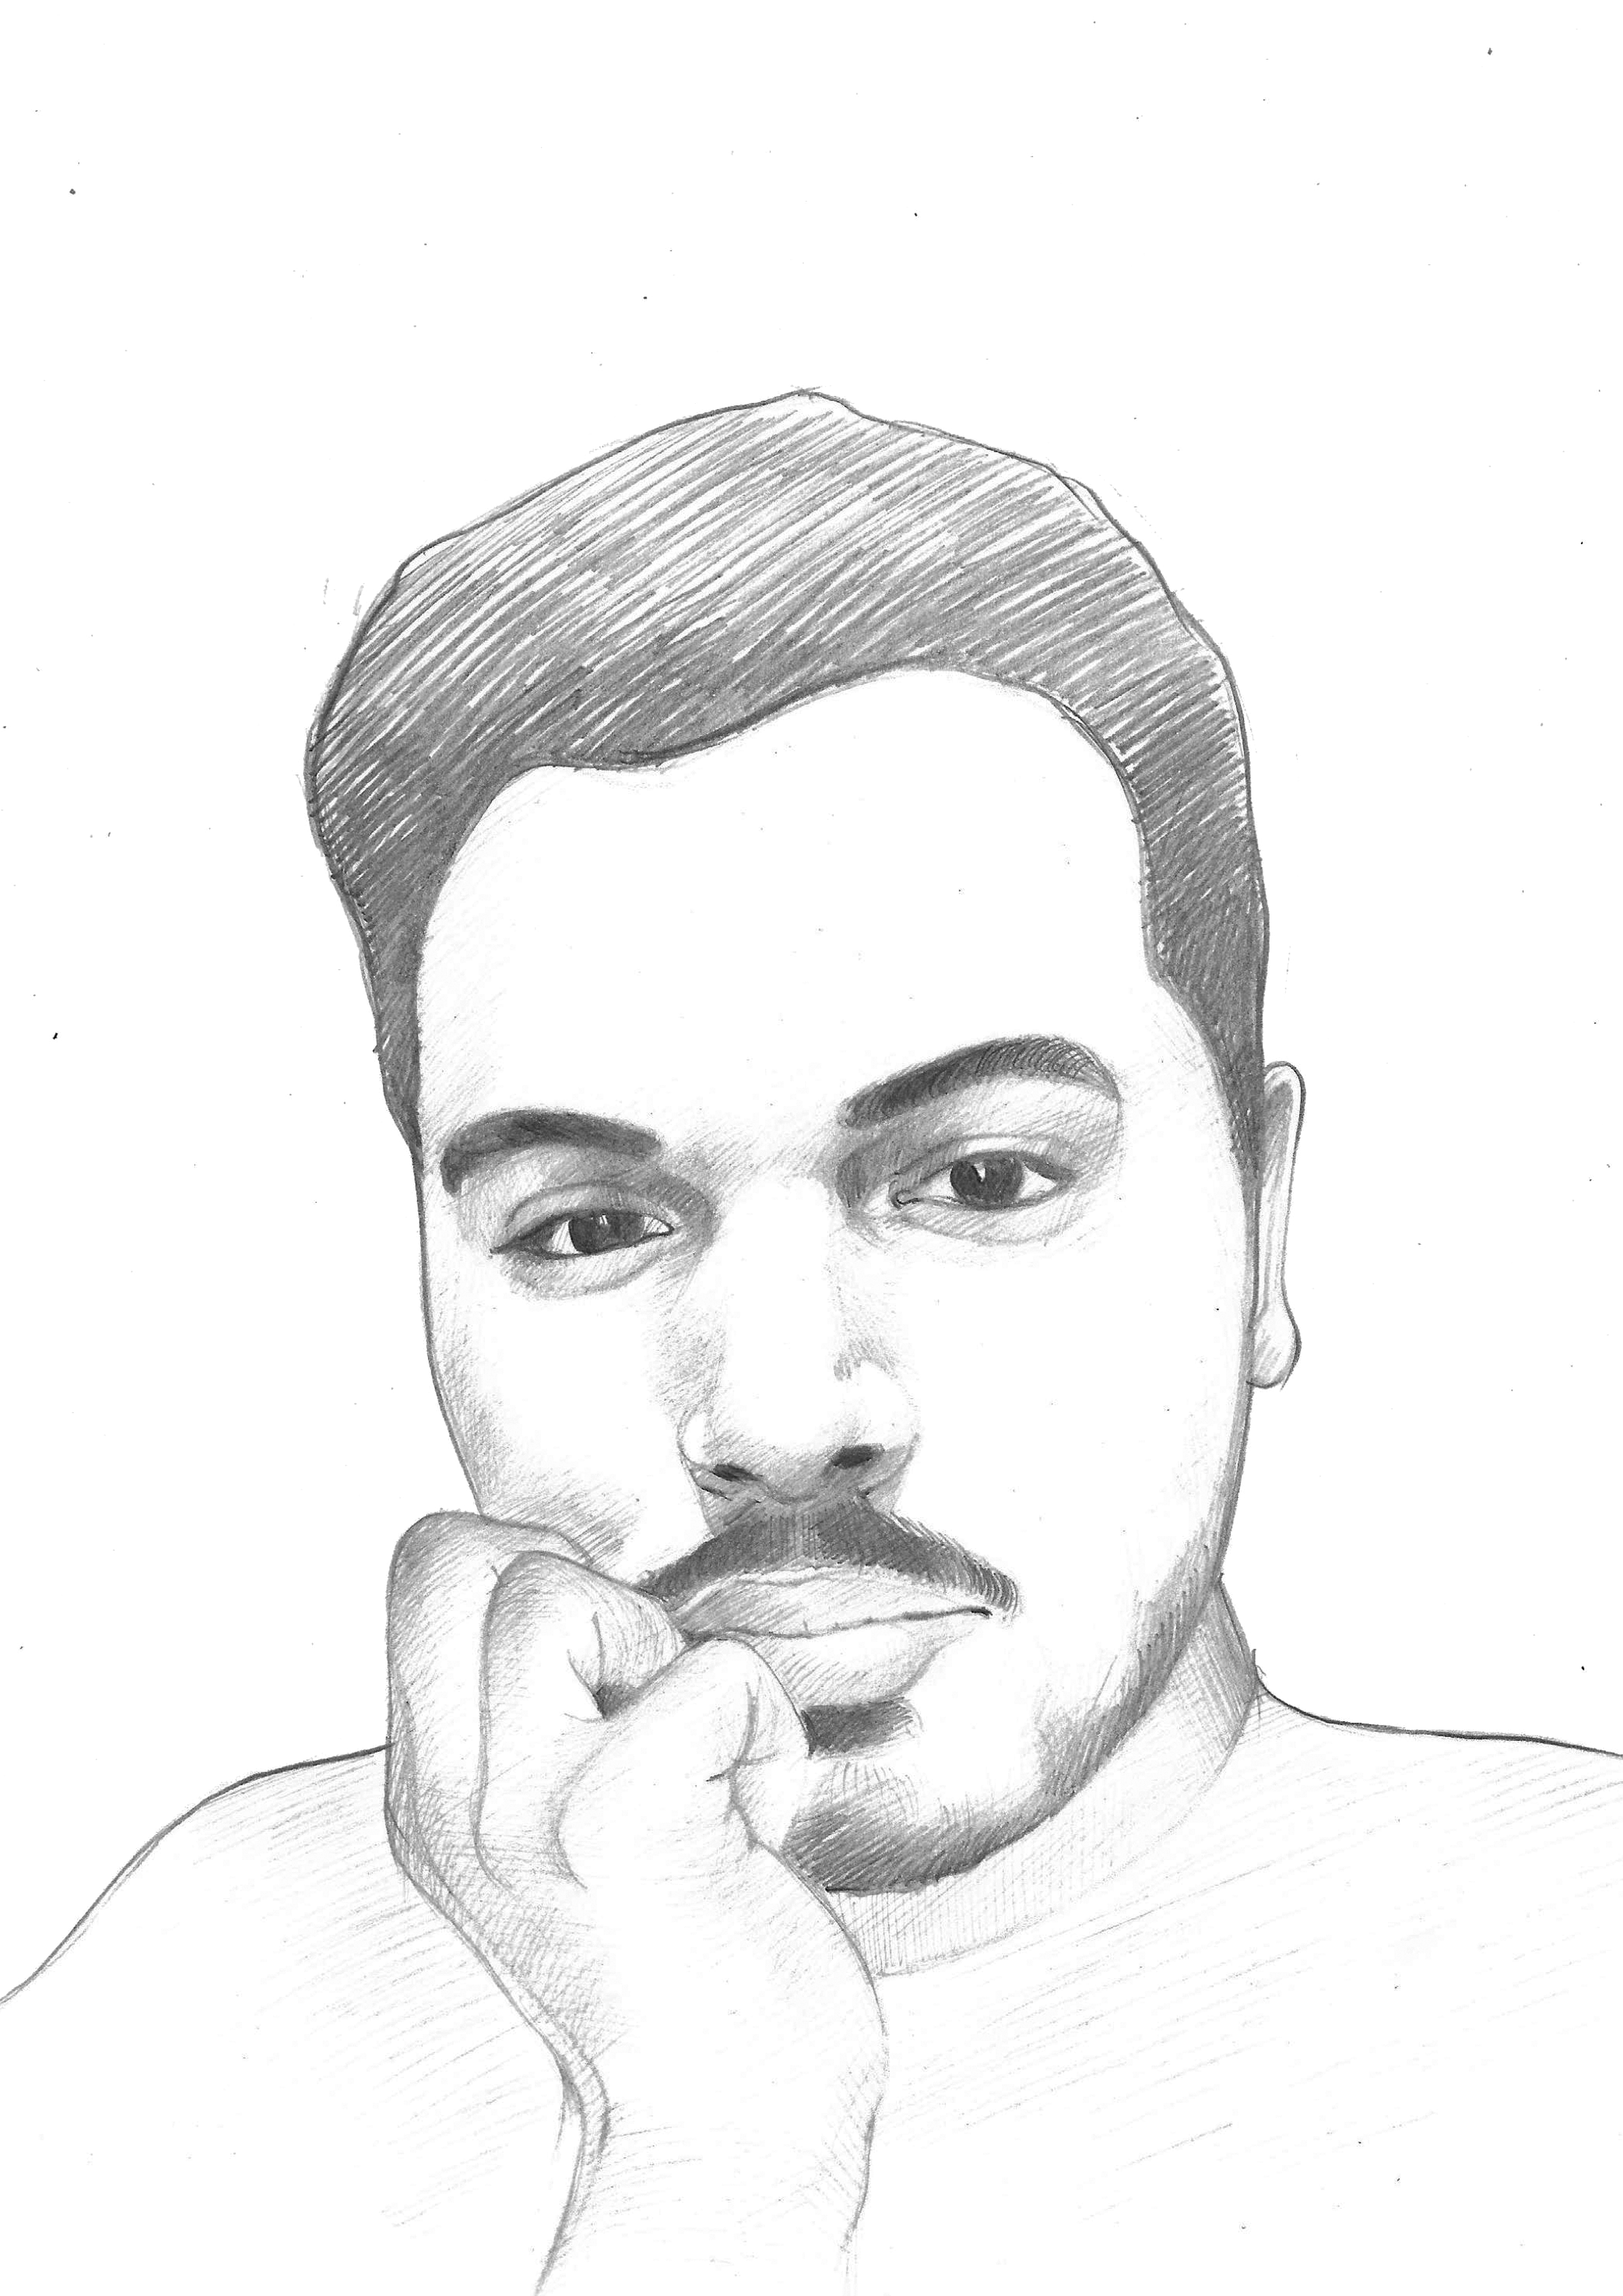 Dazzlingdezigns I Will Draw Pencil Sketch Portraits And Illustrations For 10 On Fiverr Com In 2020 Pencil Sketch Portrait Beautiful Pencil Sketches Pencil Sketch